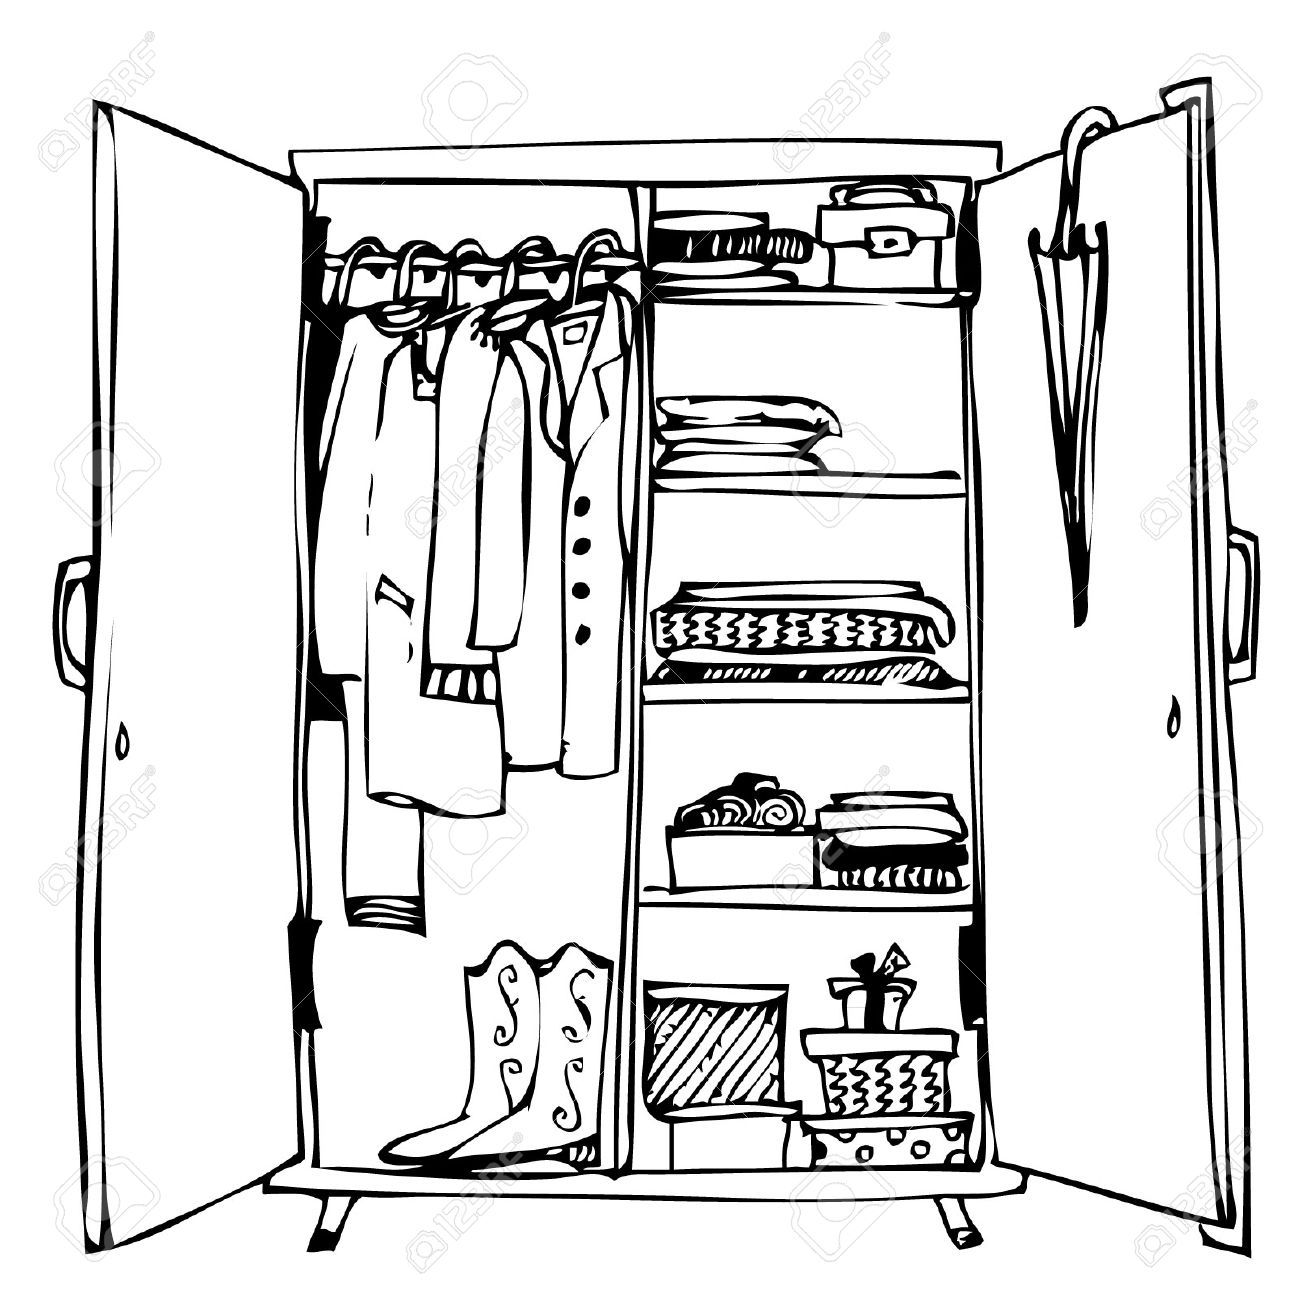 Closet clipart black and white clipart royalty free download Wardrobe clipart black and white 6 » Clipart Portal clipart royalty free download